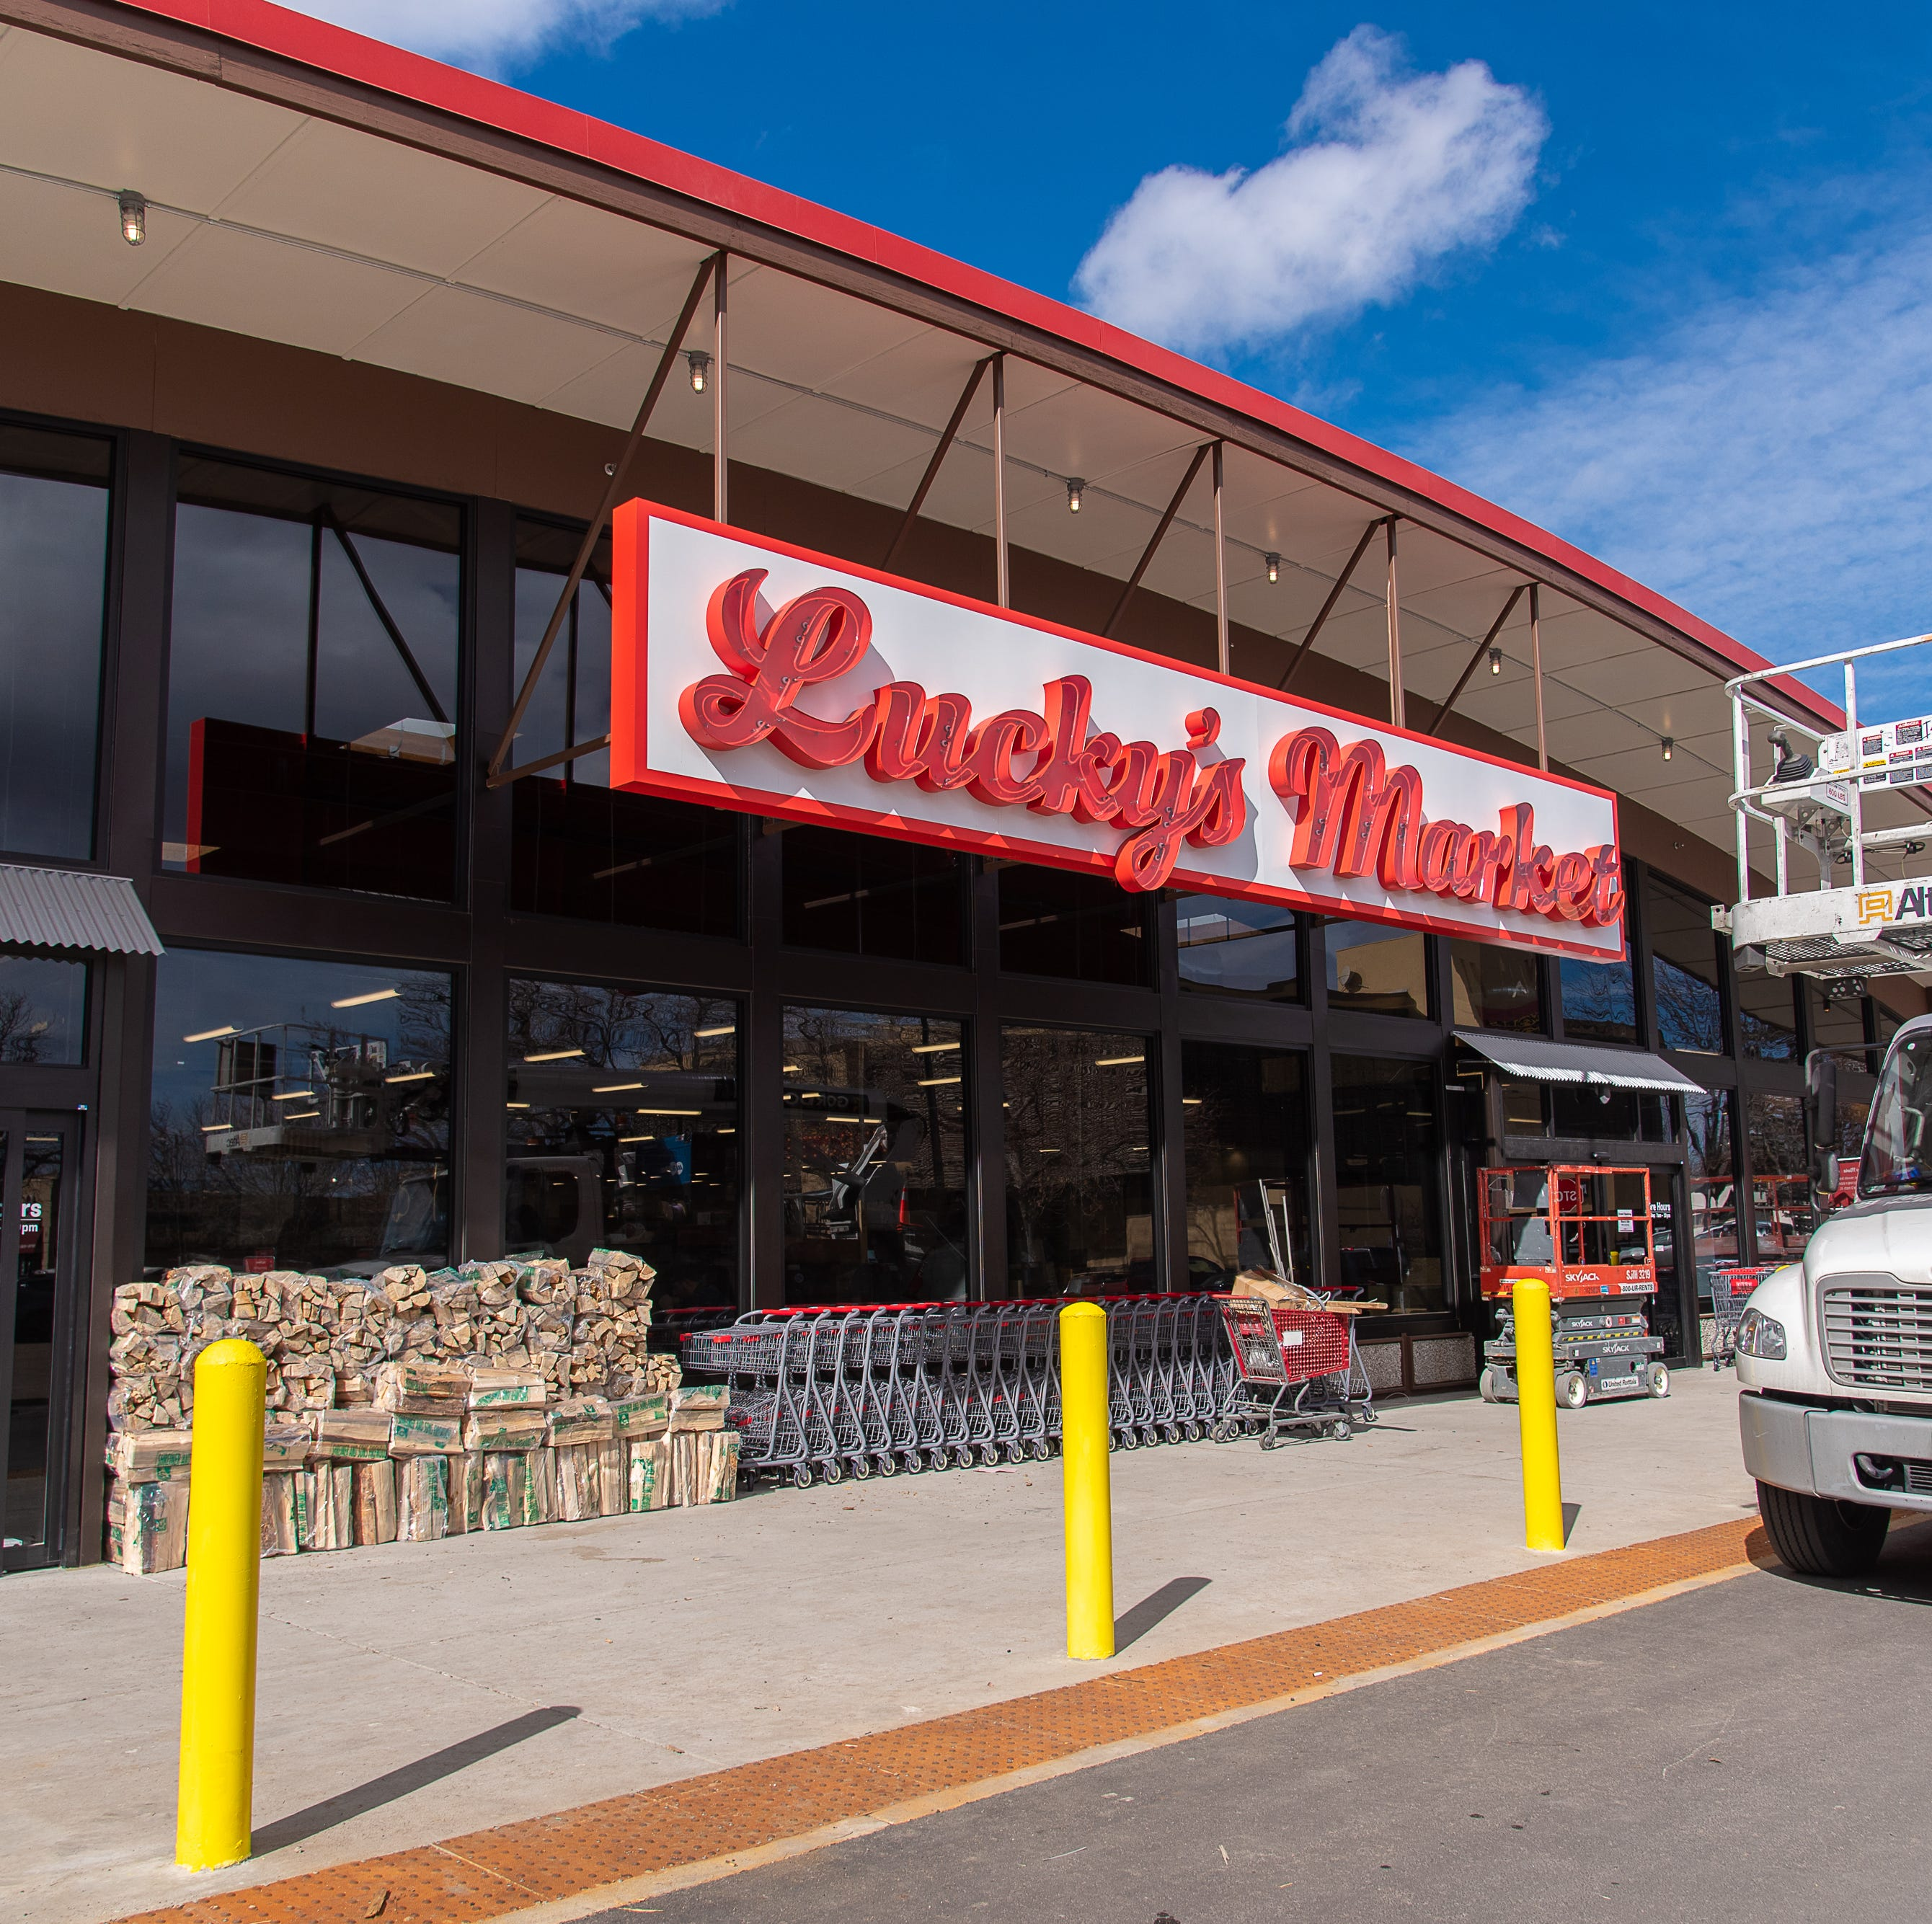 Here's a sneak peek of Lucky's Market and 5 things you need to know for opening day